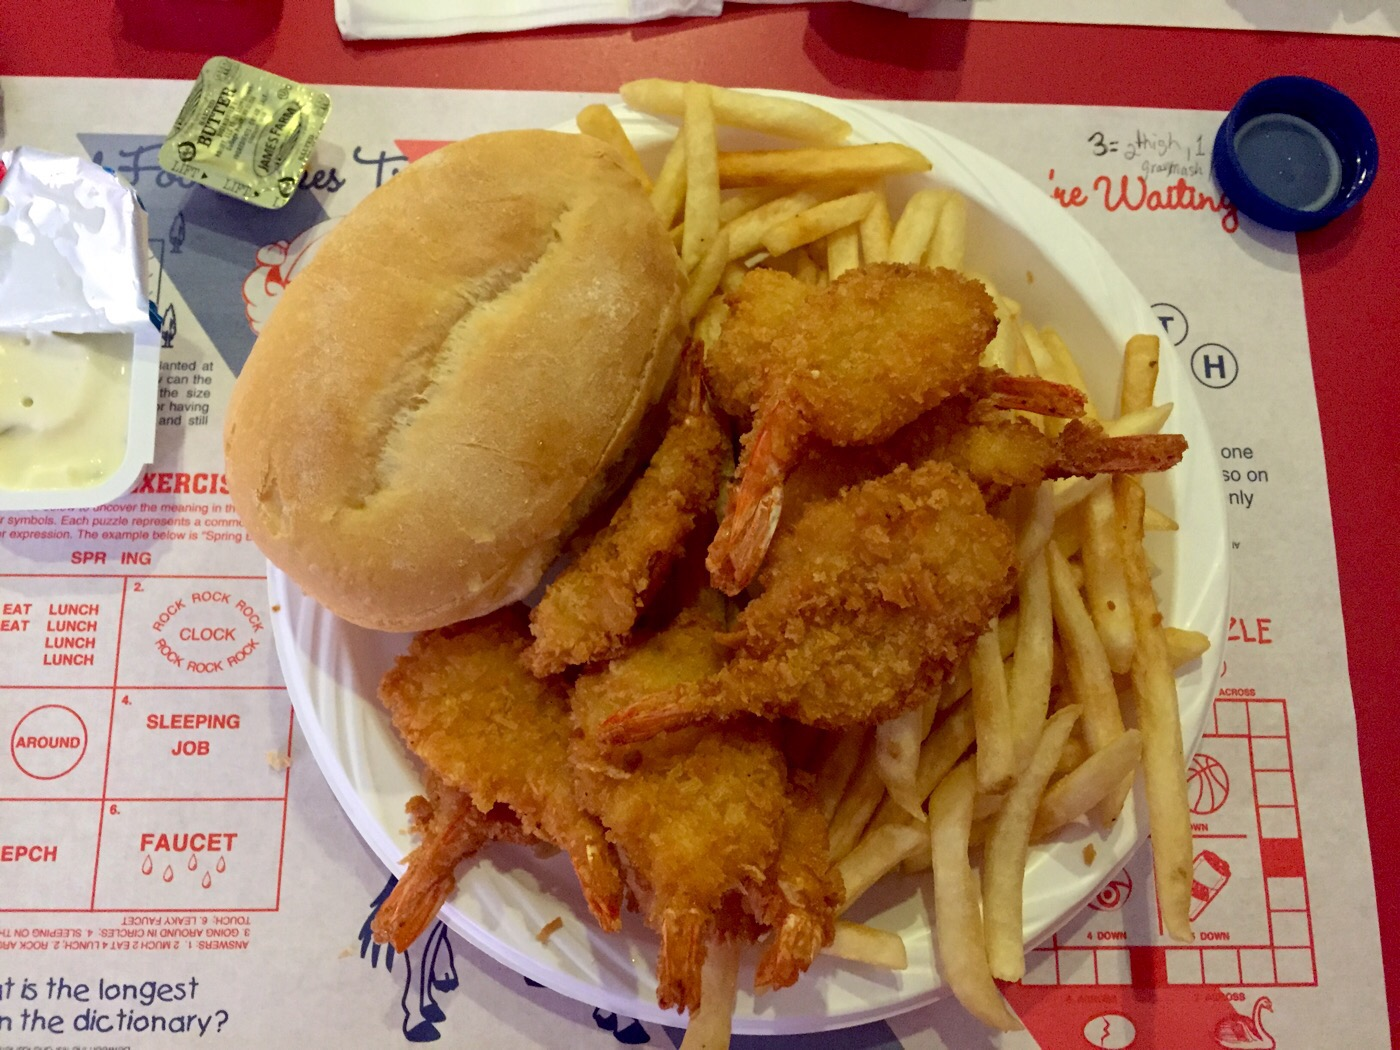 Fried shrimp and fries with bread